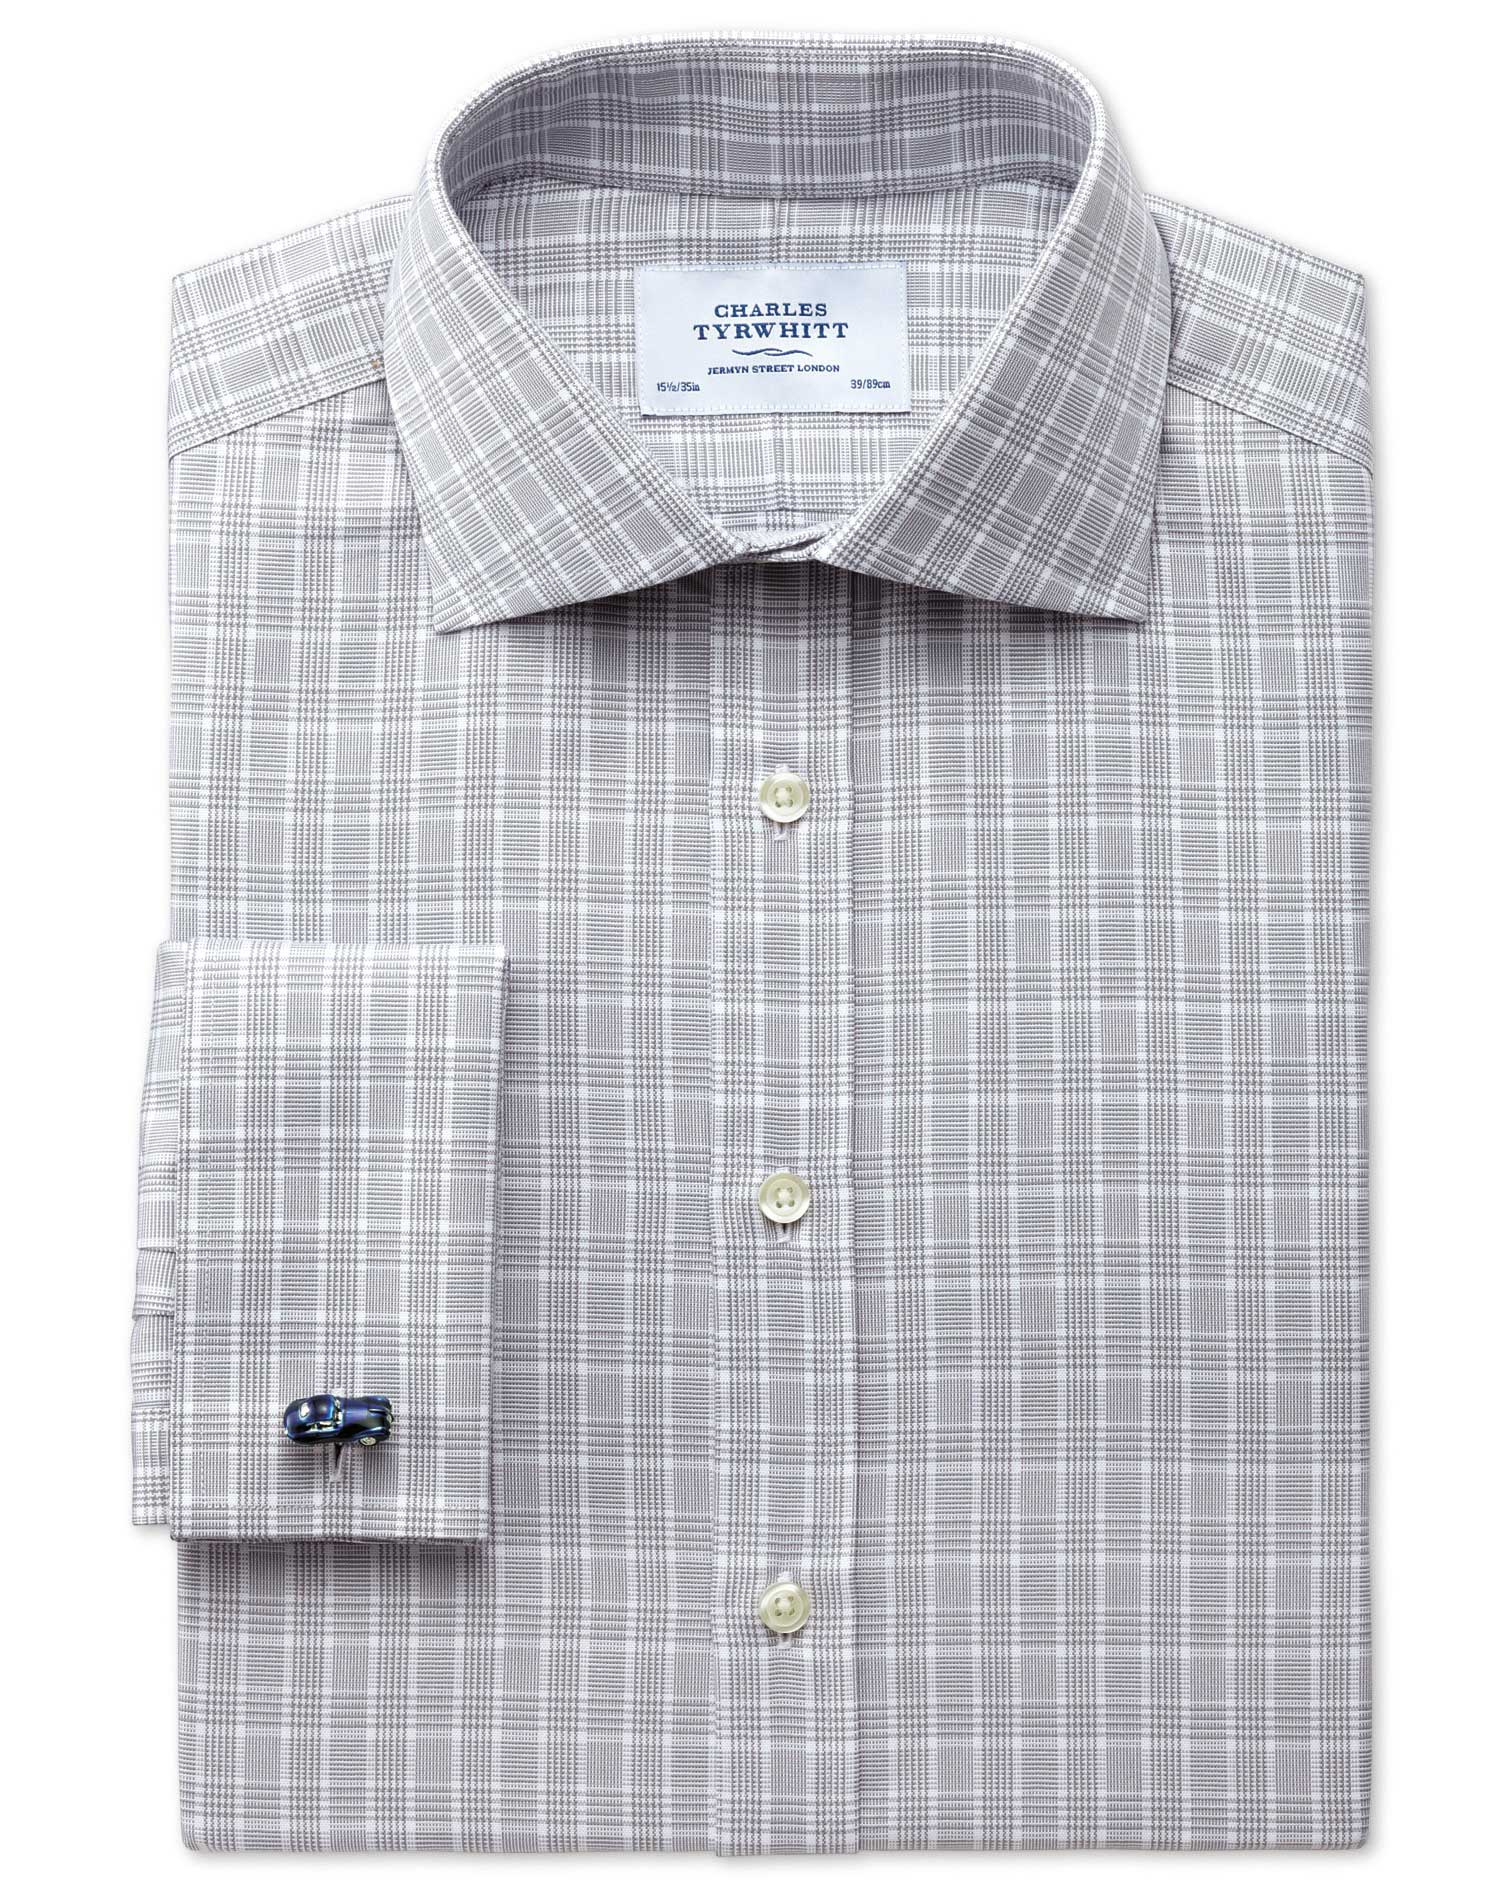 Slim Fit Prince Of Wales Silver Cotton Formal Shirt Double Cuff Size 16.5/38 by Charles Tyrwhitt